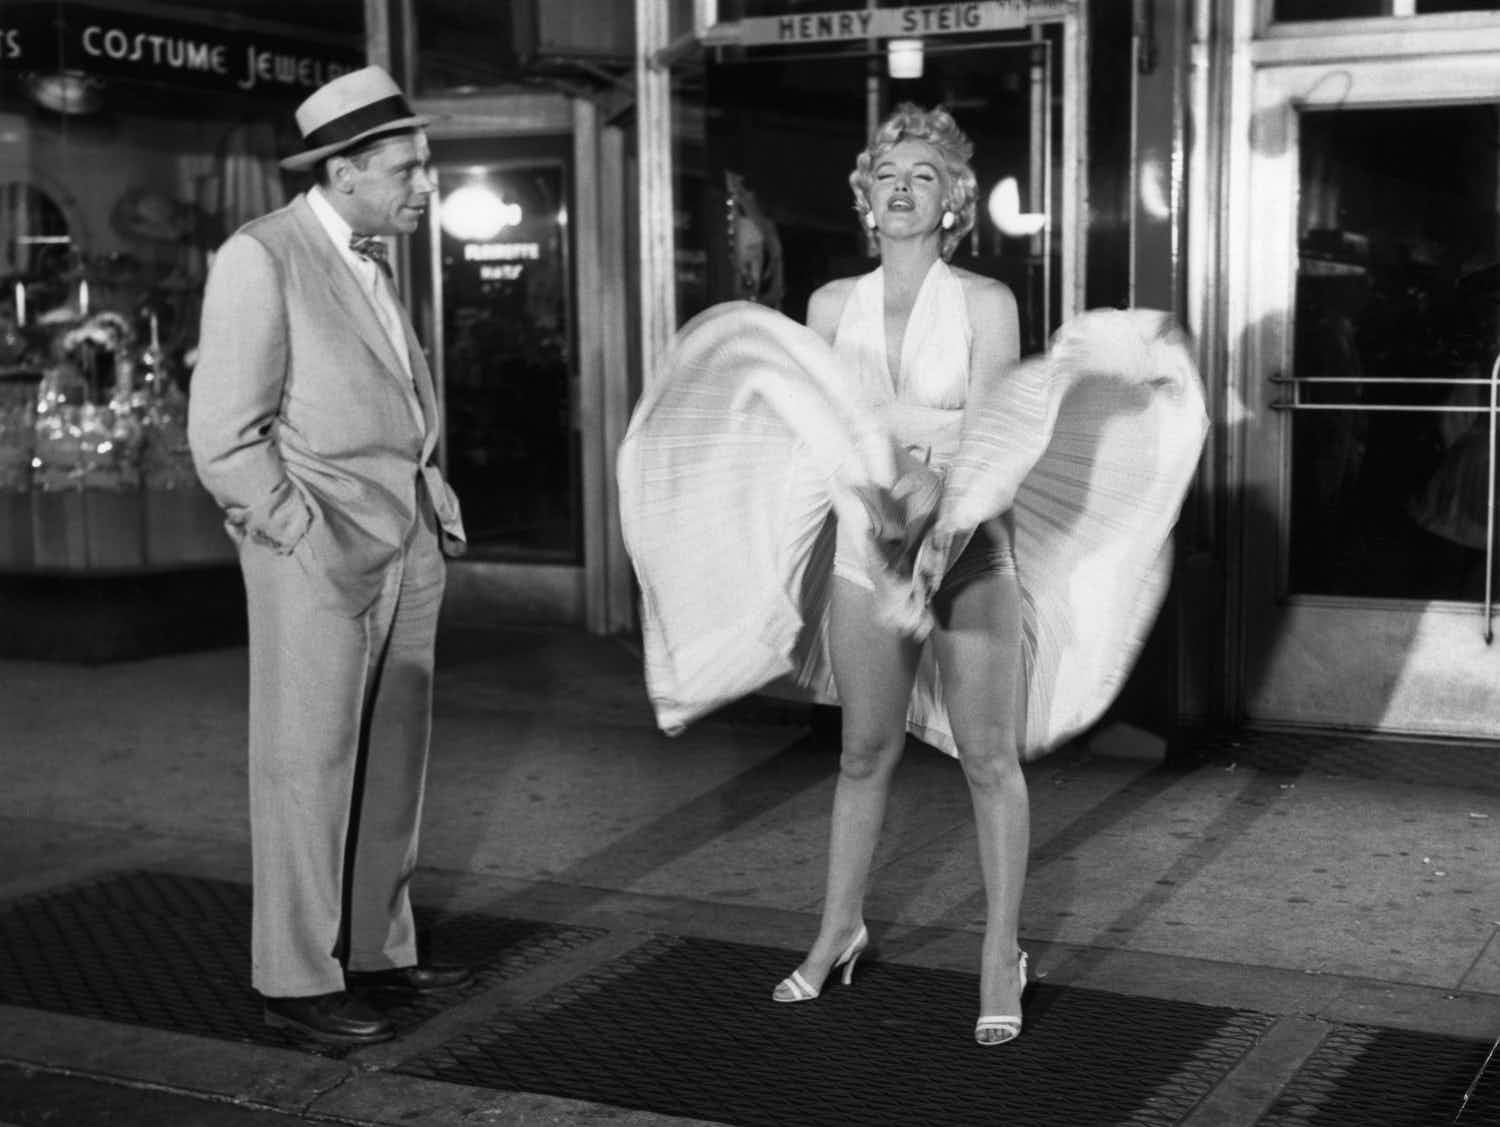 A New York hotel has named a suite after its famous guest Marilyn Monroe